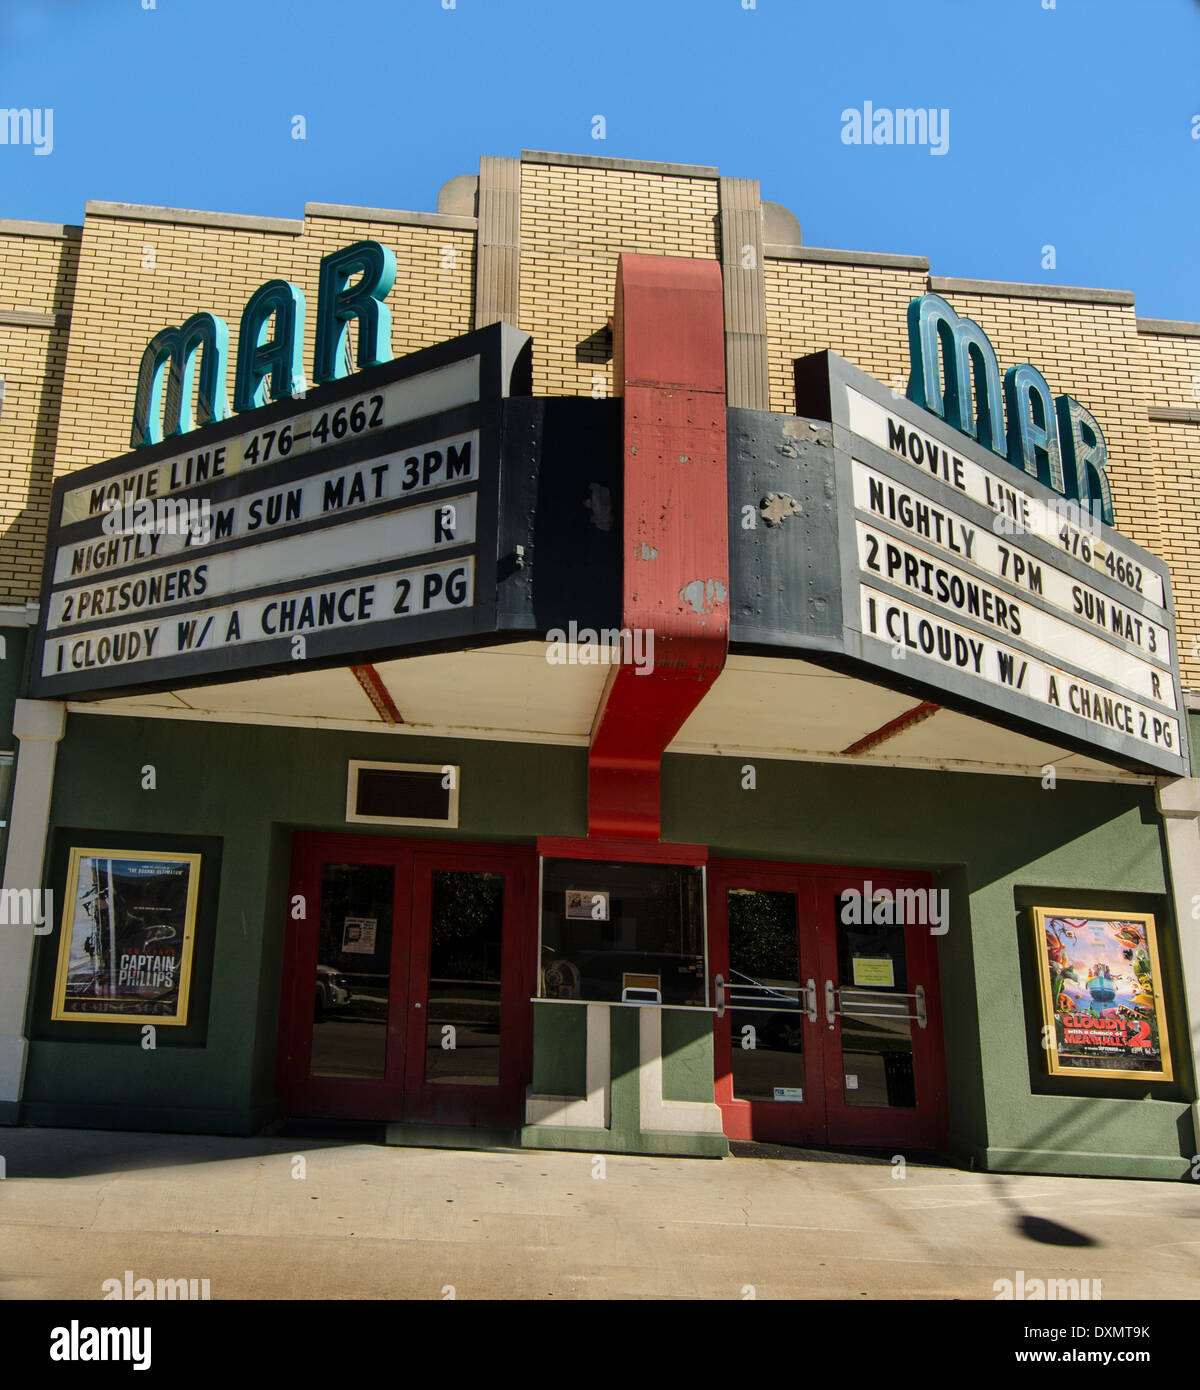 The historic Mar Theater, which opened in 1937, is still in operation in Wilmington, Illinois, a town along Route 66. - Stock Image